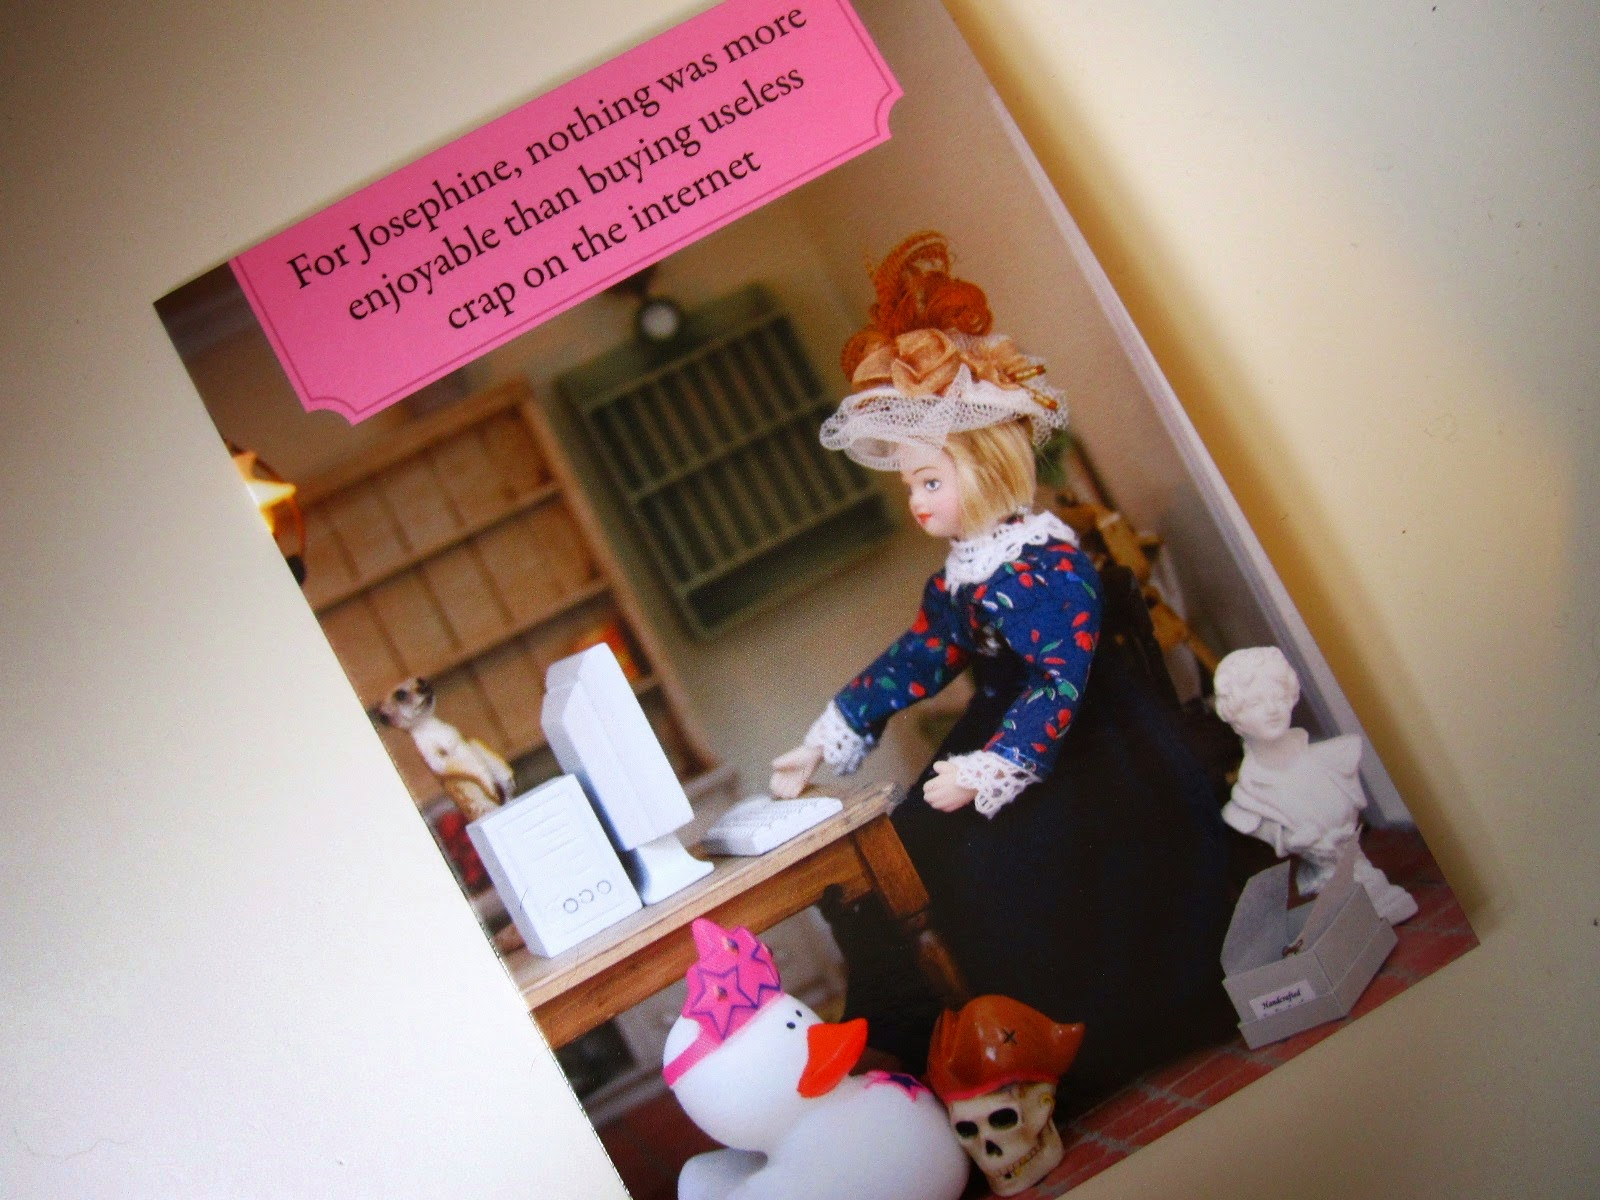 Greeting card showing a dolls house doll at a miniature computer, surrounded by random items. Card reads 'For Josephine, nothing was more enjoyable that buying useless crap on the internet'.